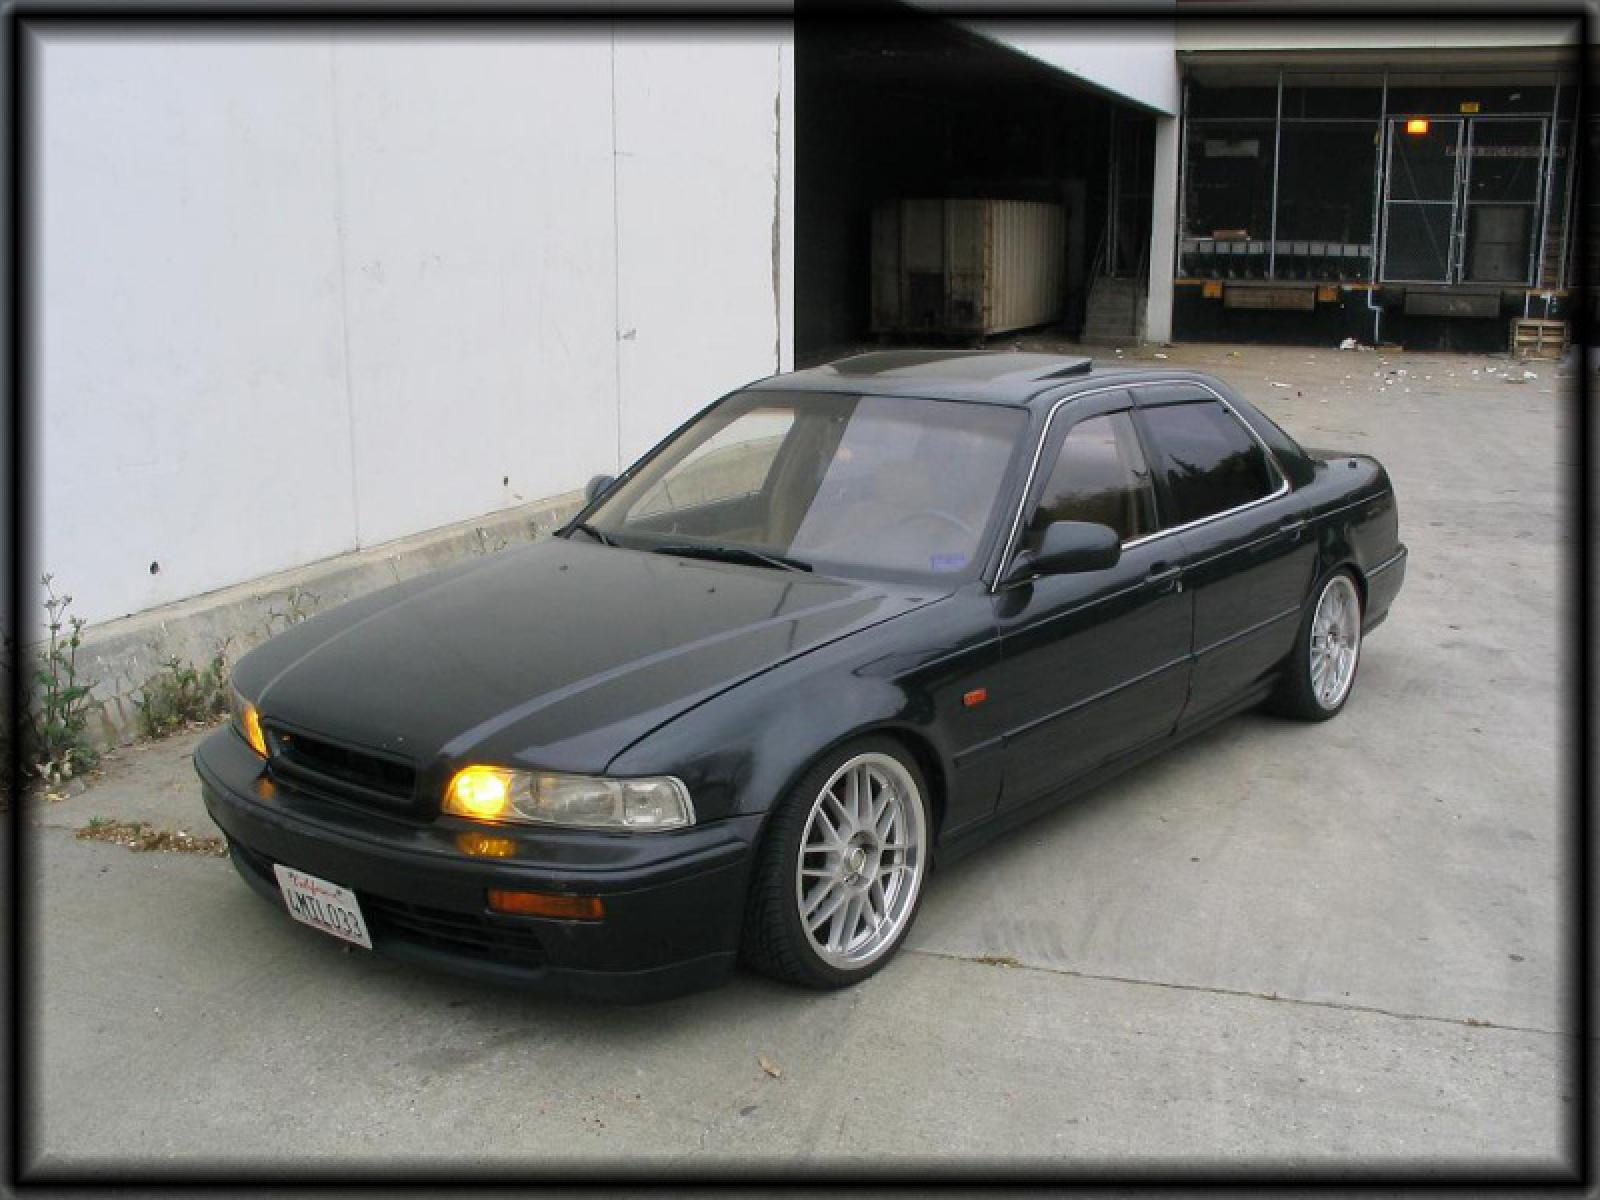 800 1024 1280 1600 Origin 1992 Acura Legend